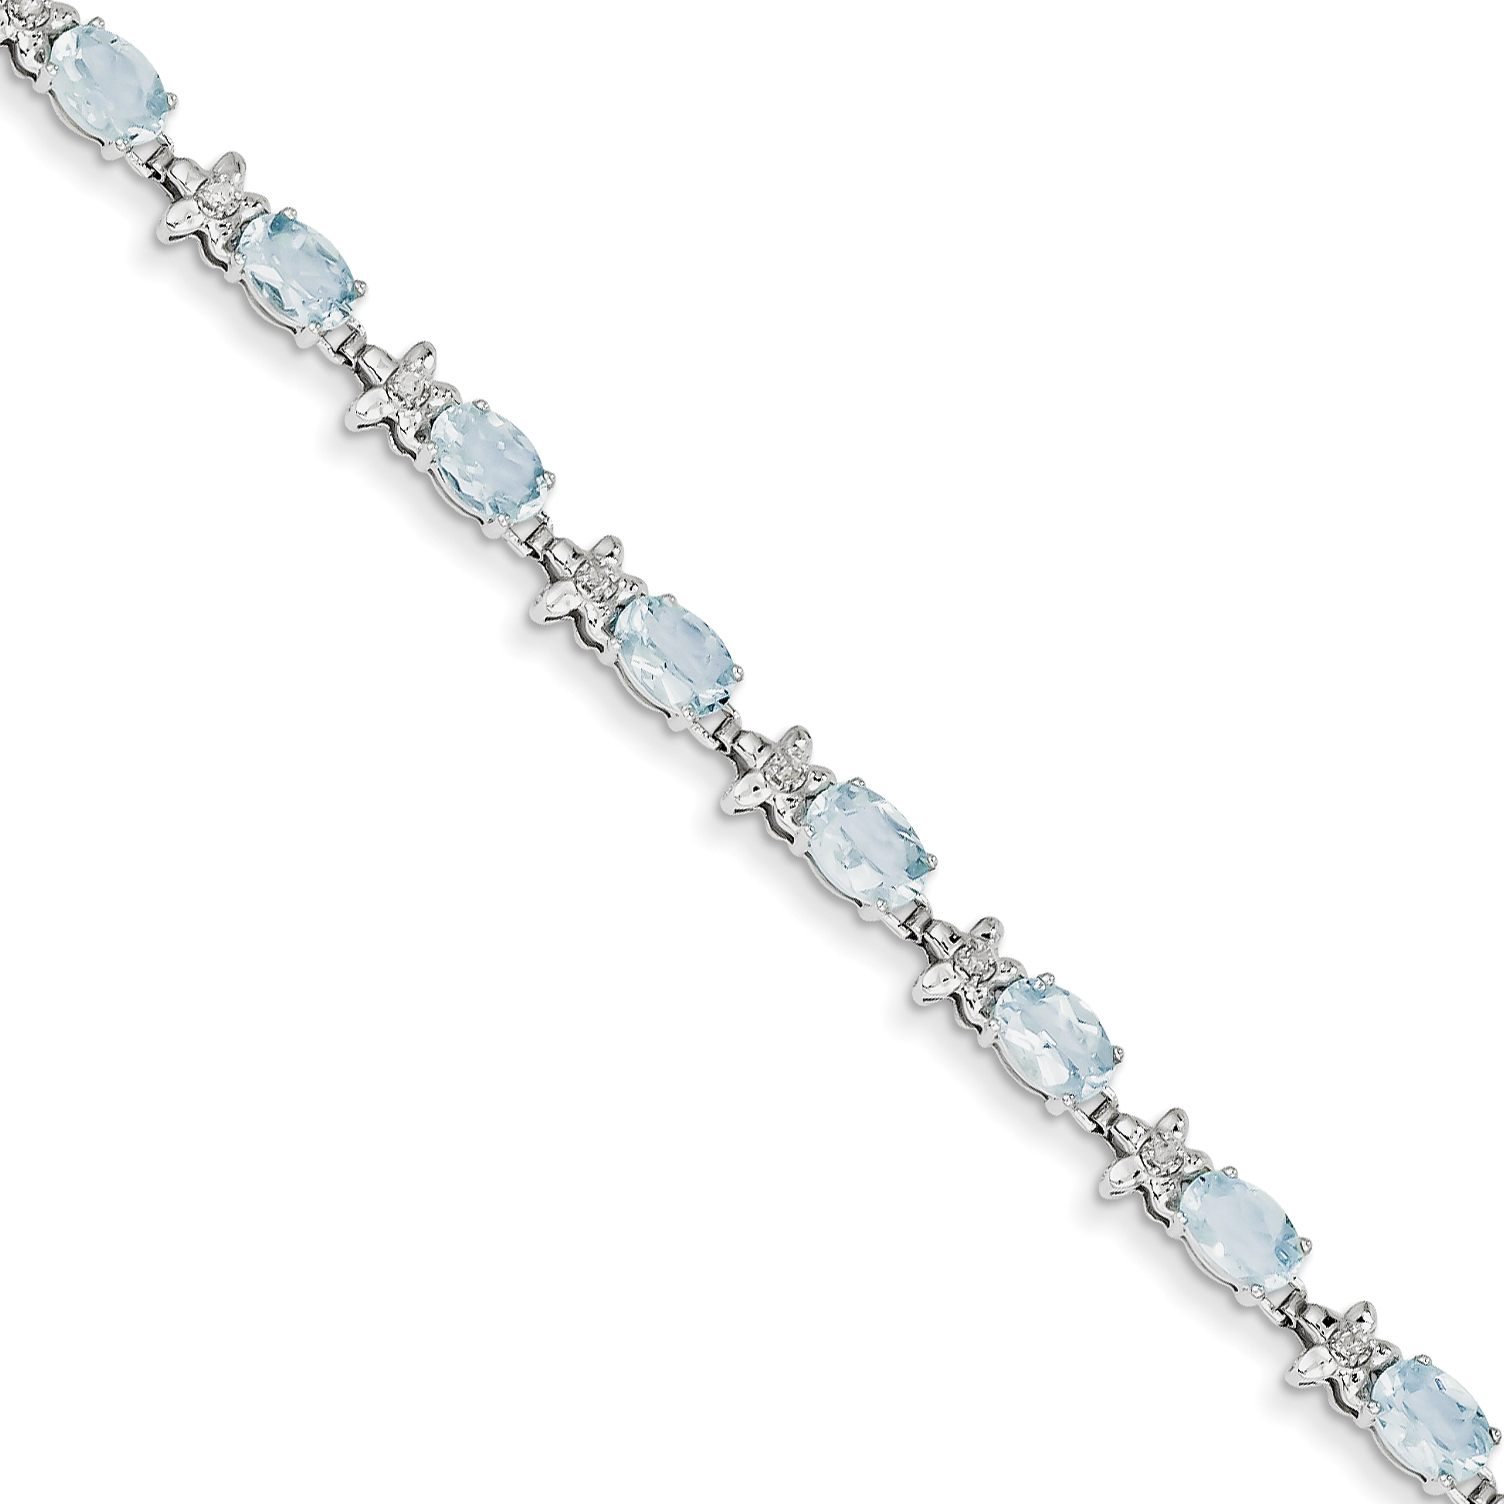 14k White Gold Fancy Floral Aquamarine Bracelet by Saris and Things QG